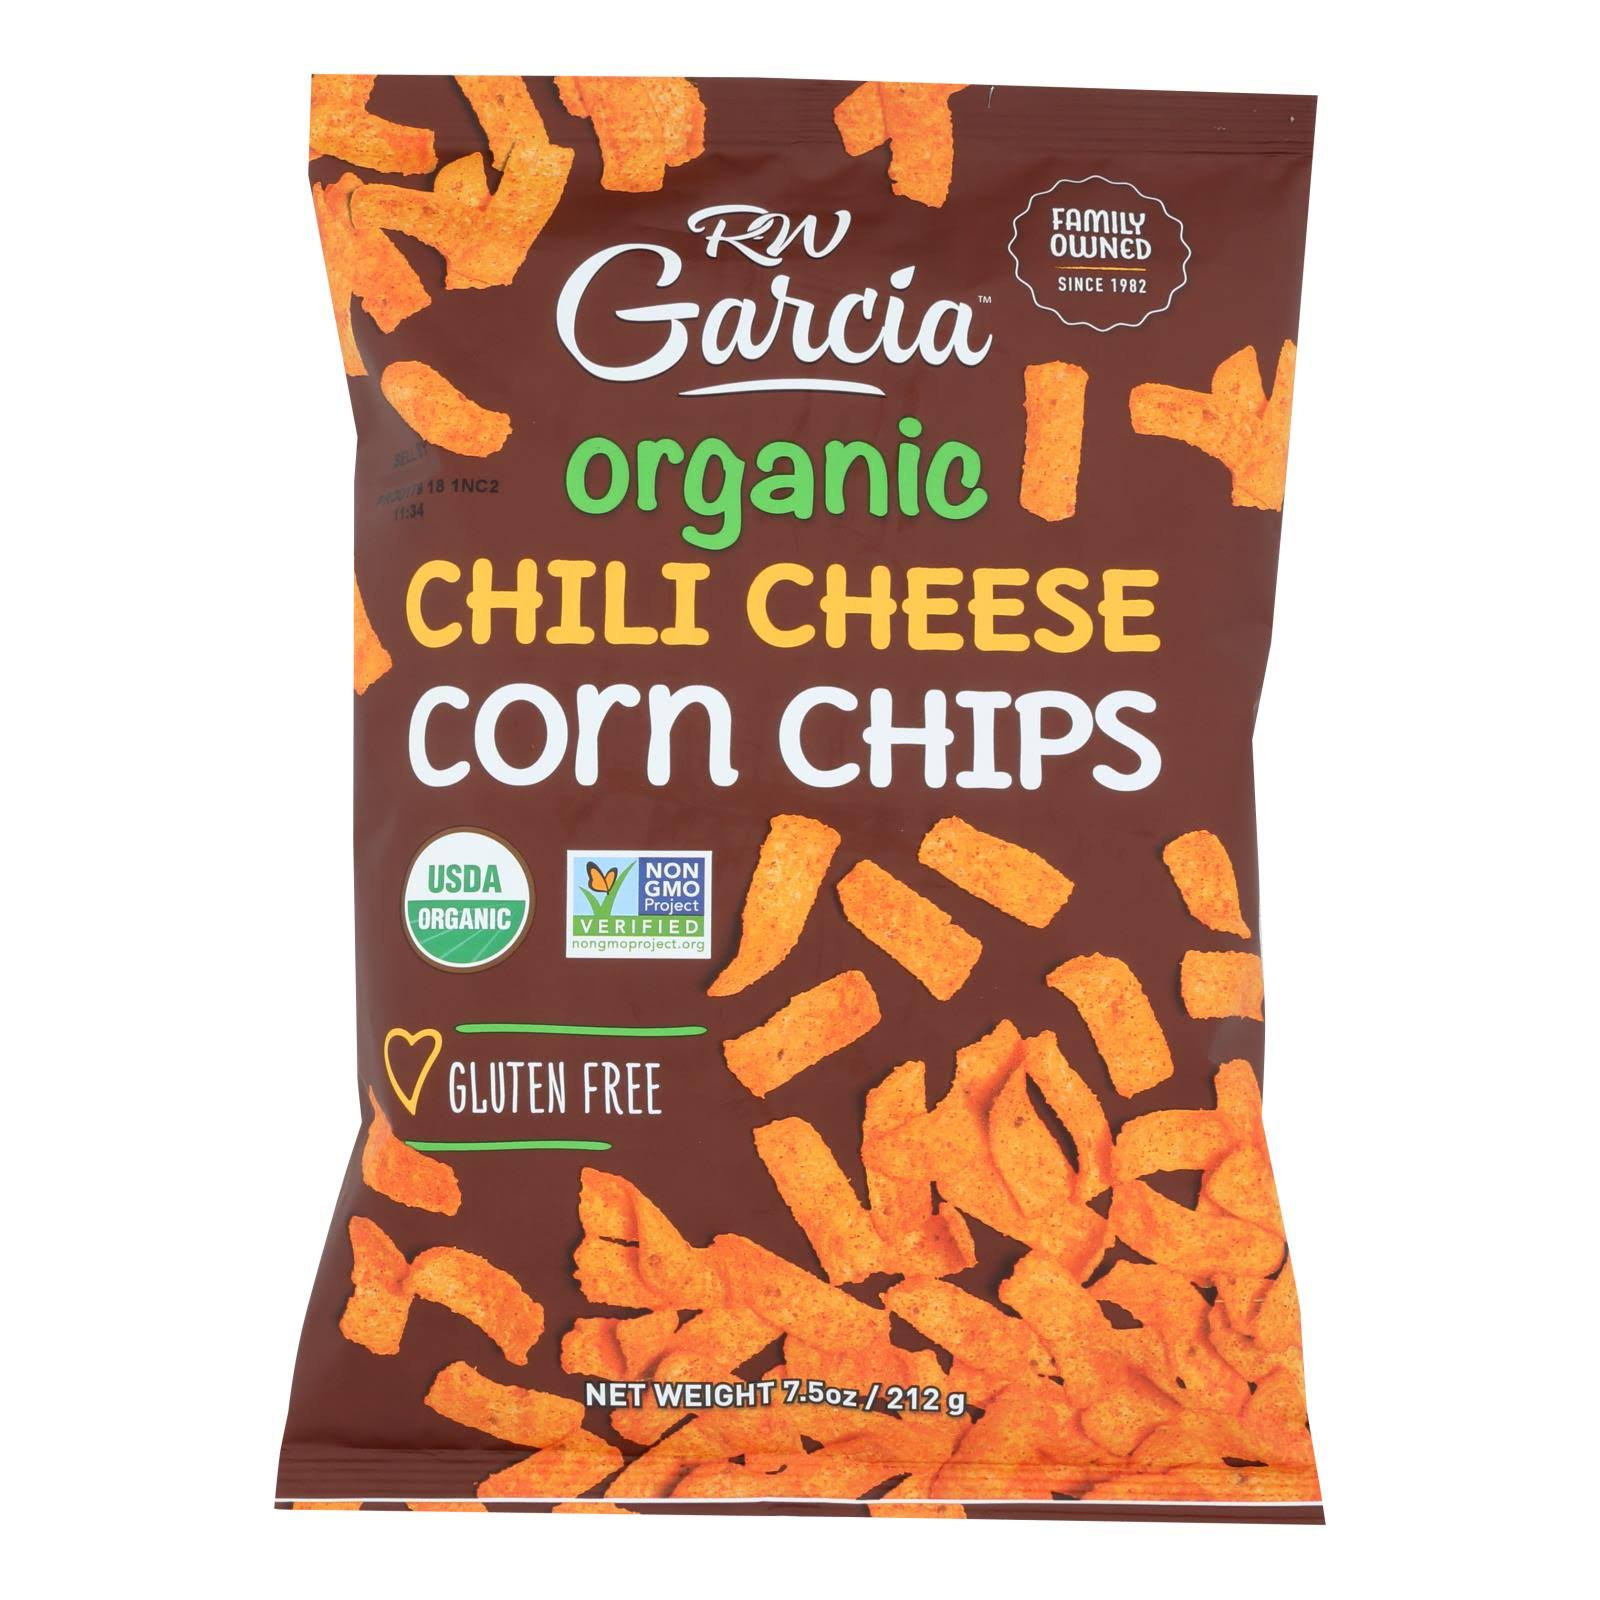 RW Garcia Organic Corn Chips - Chili Cheese